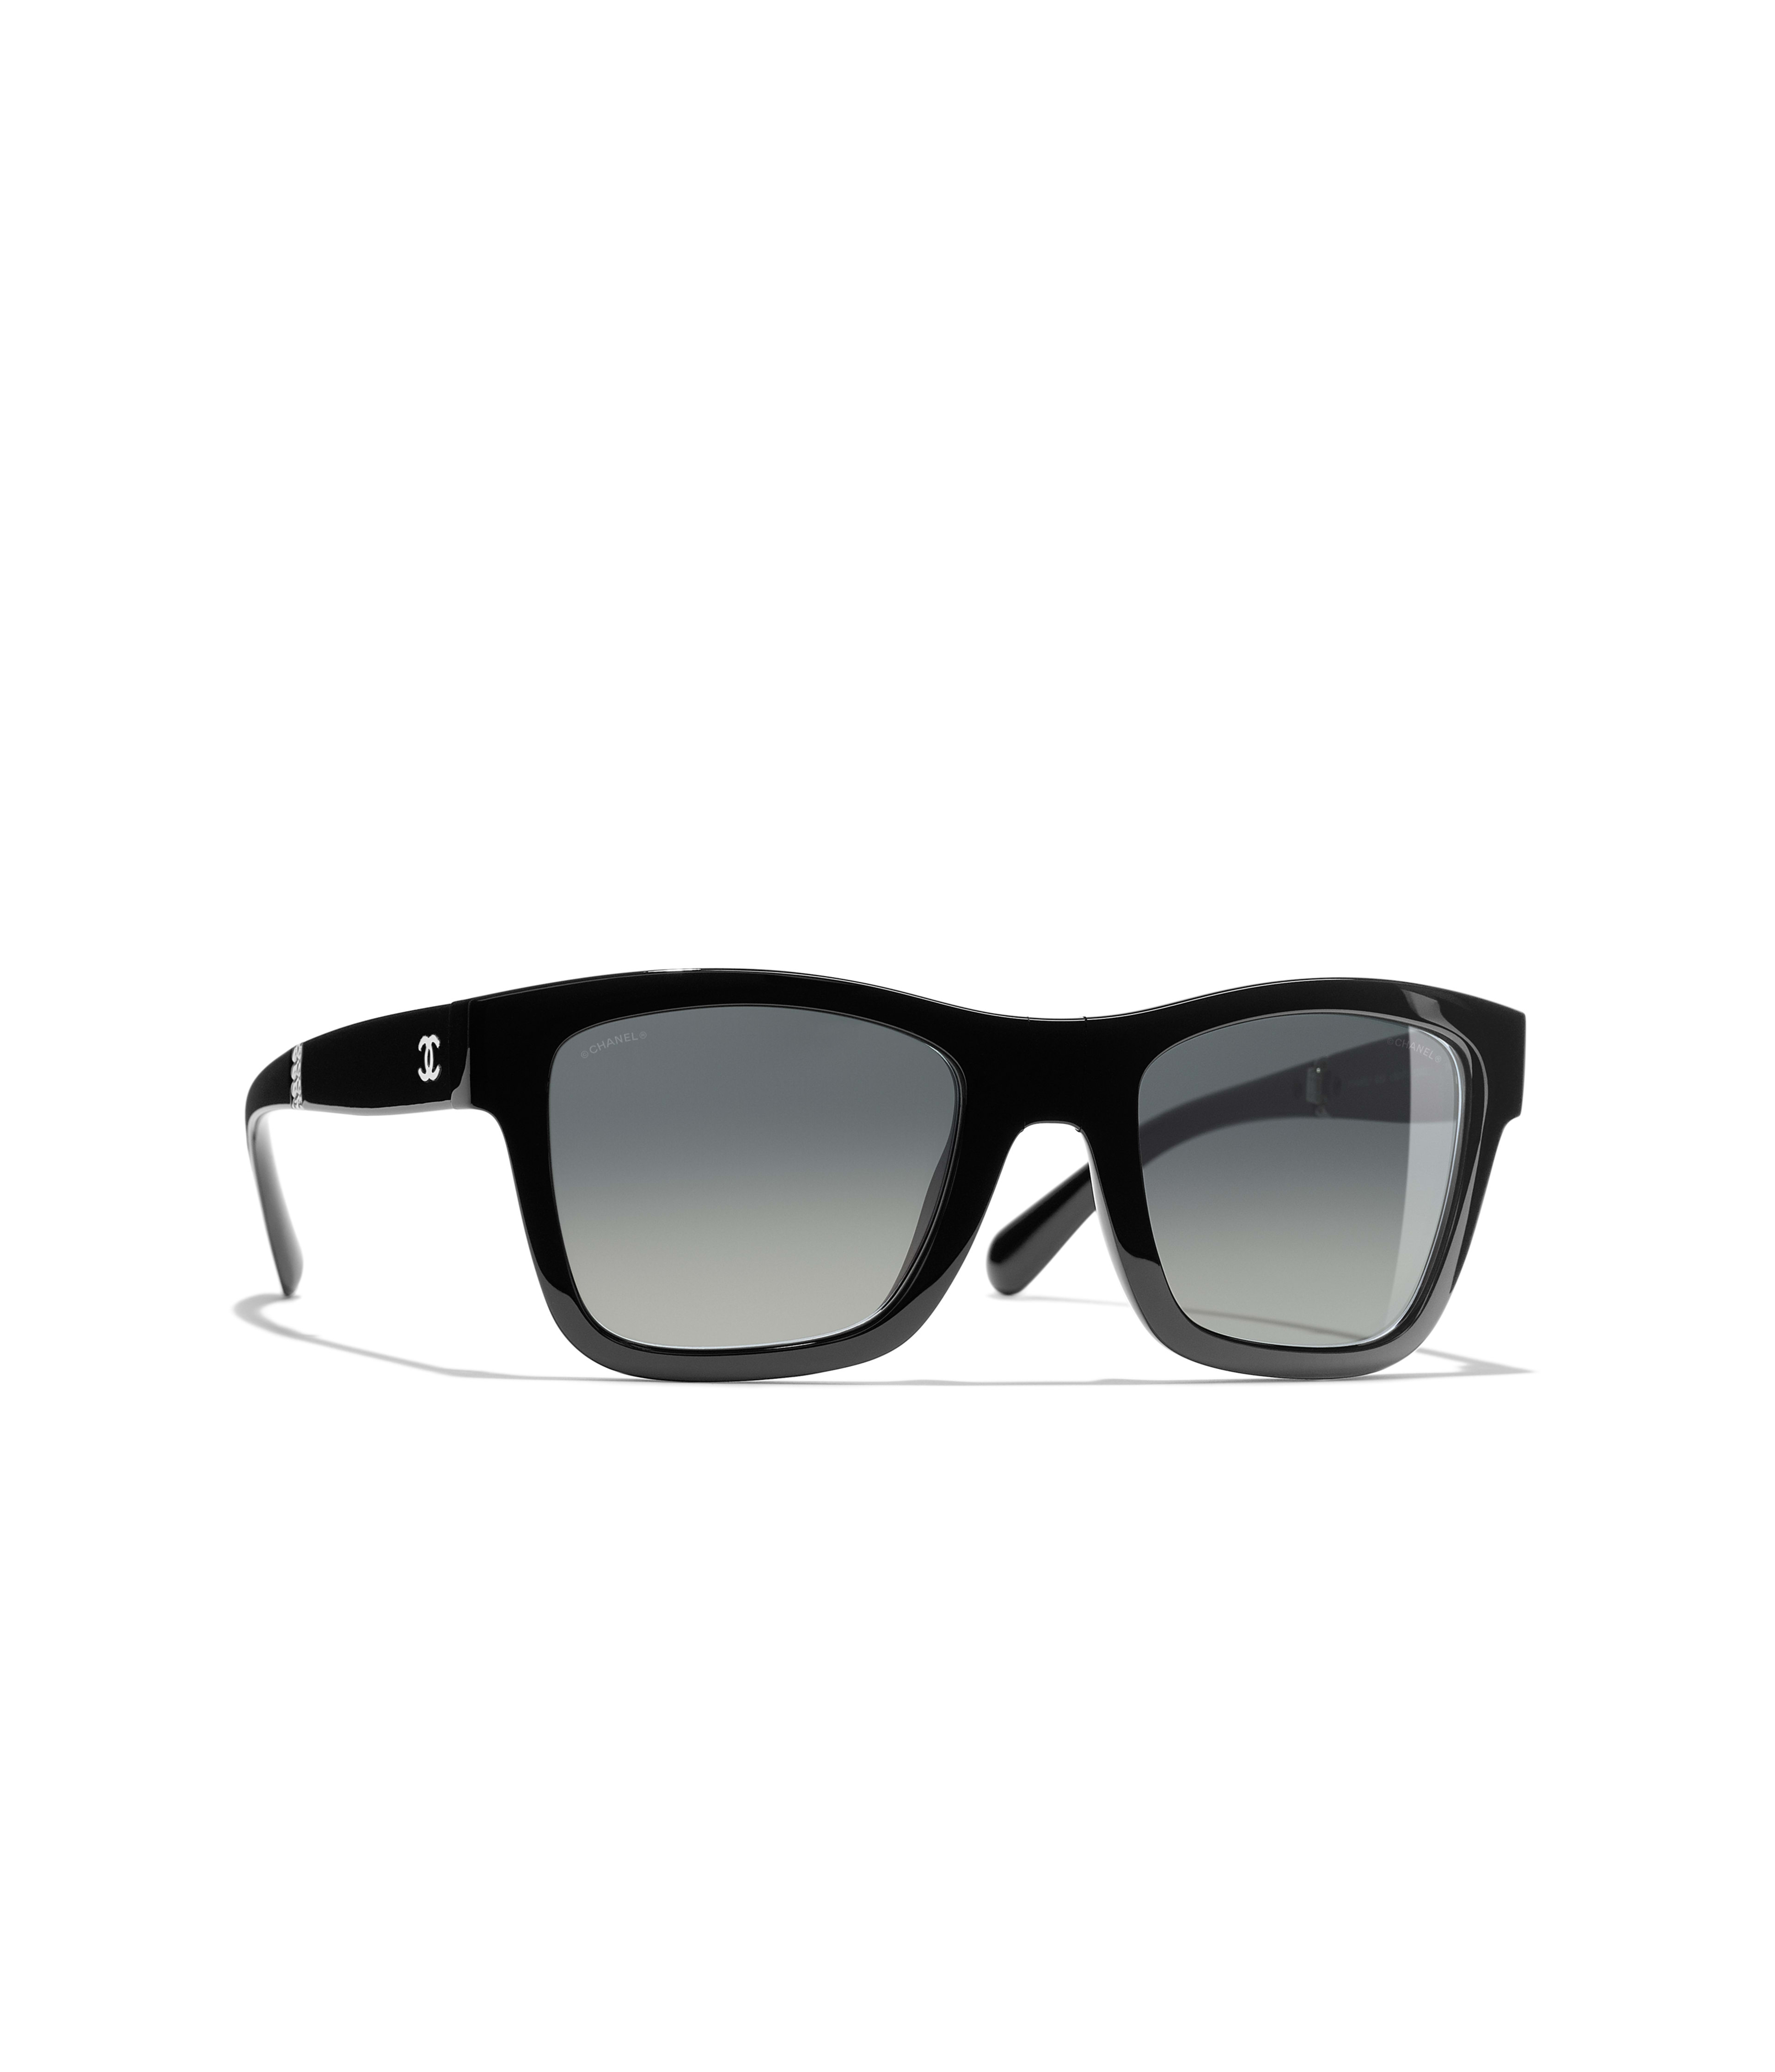 895b09a3e1 Square Sunglasses Ref. 6053 C501 71